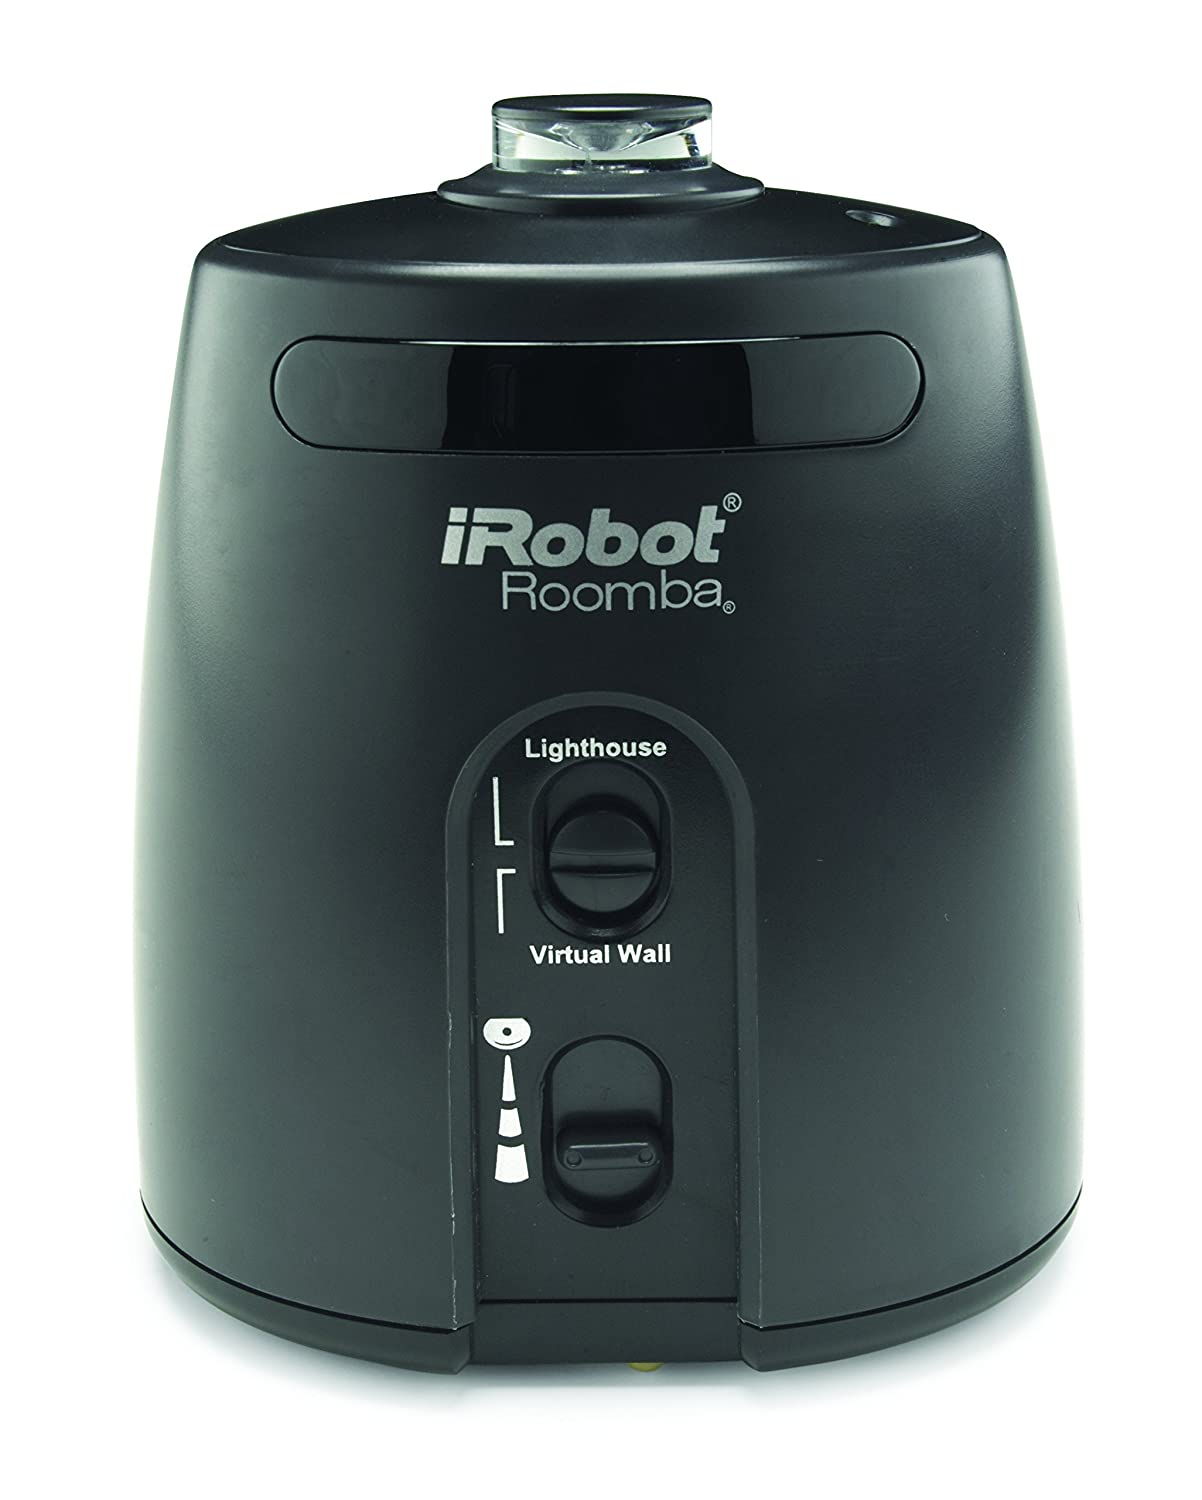 Irobot lighthouse